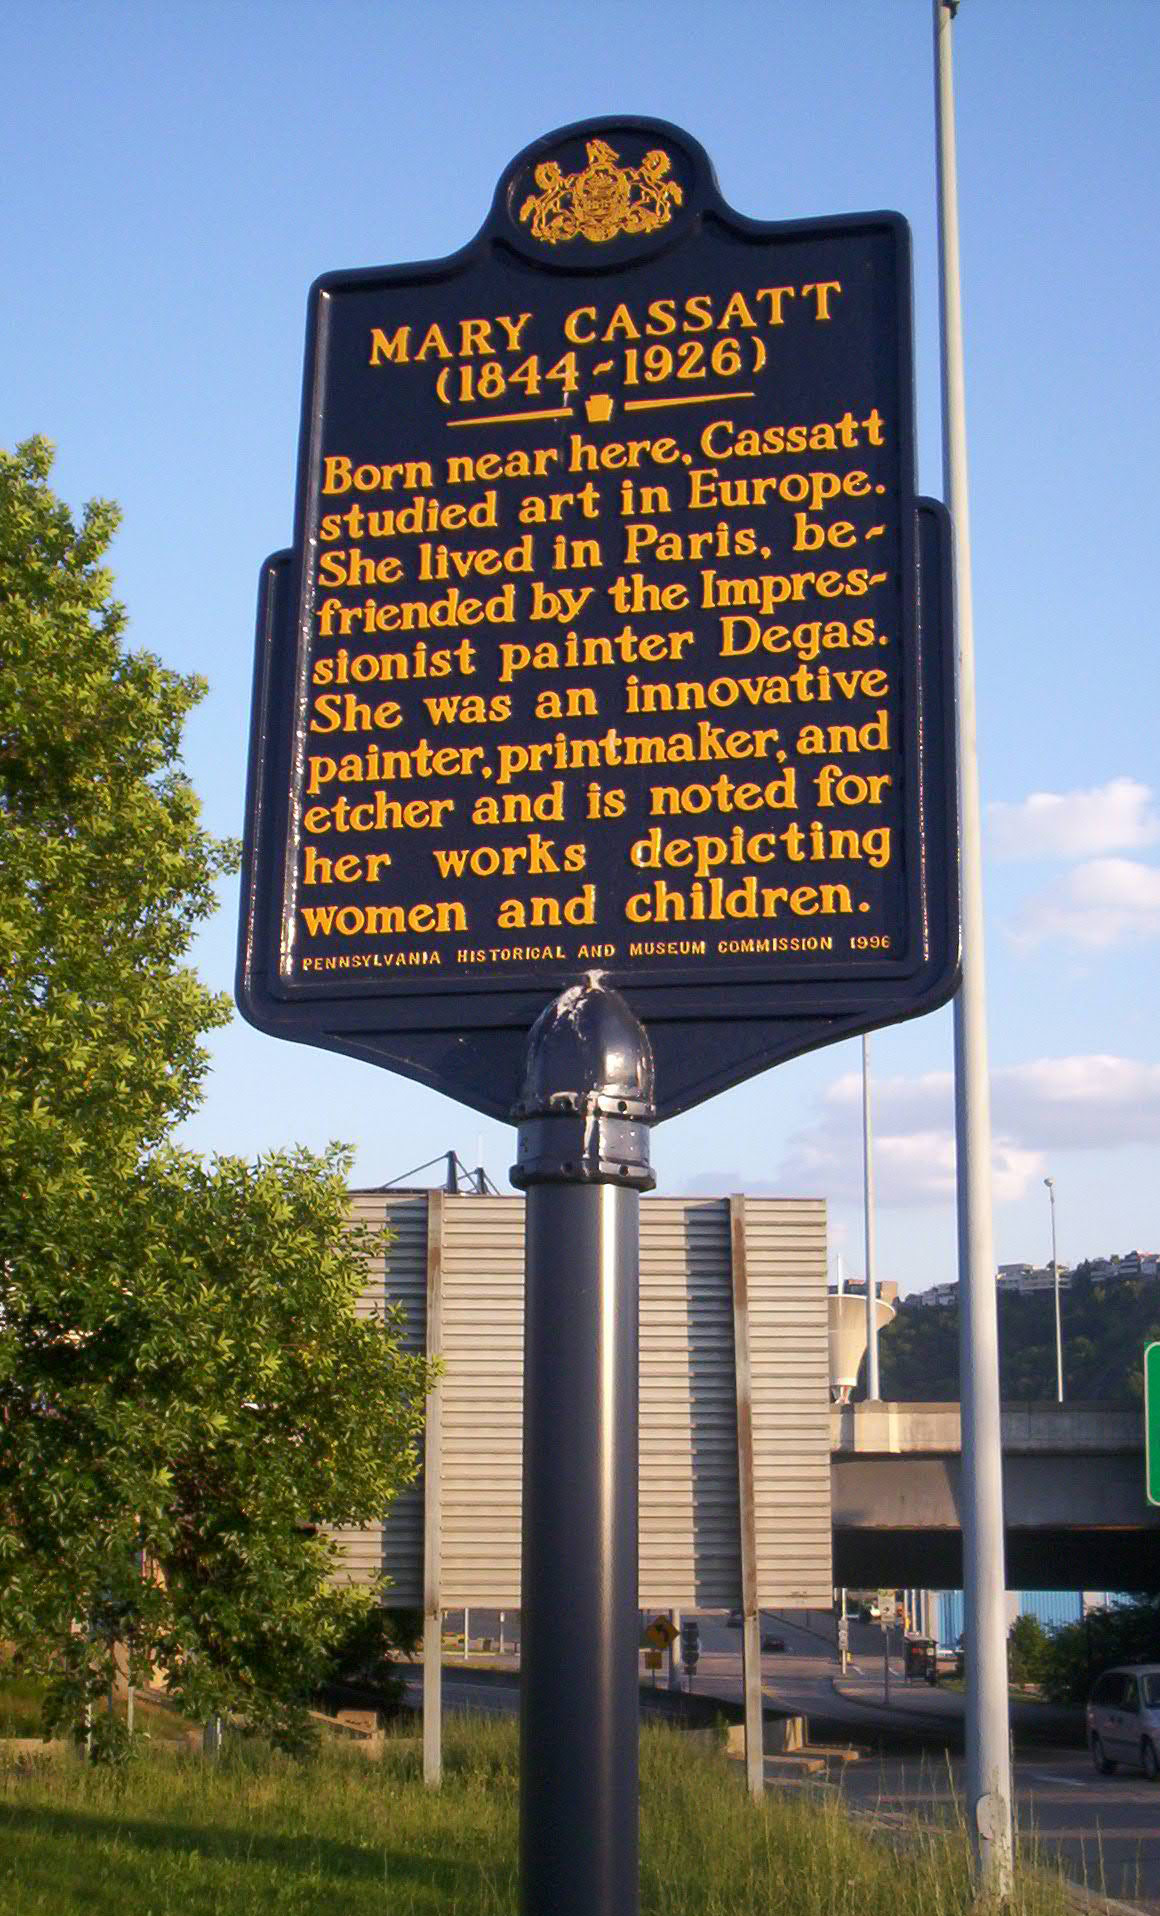 This historical marker is located near Cassatt's birthplace, where she lived until age 4.